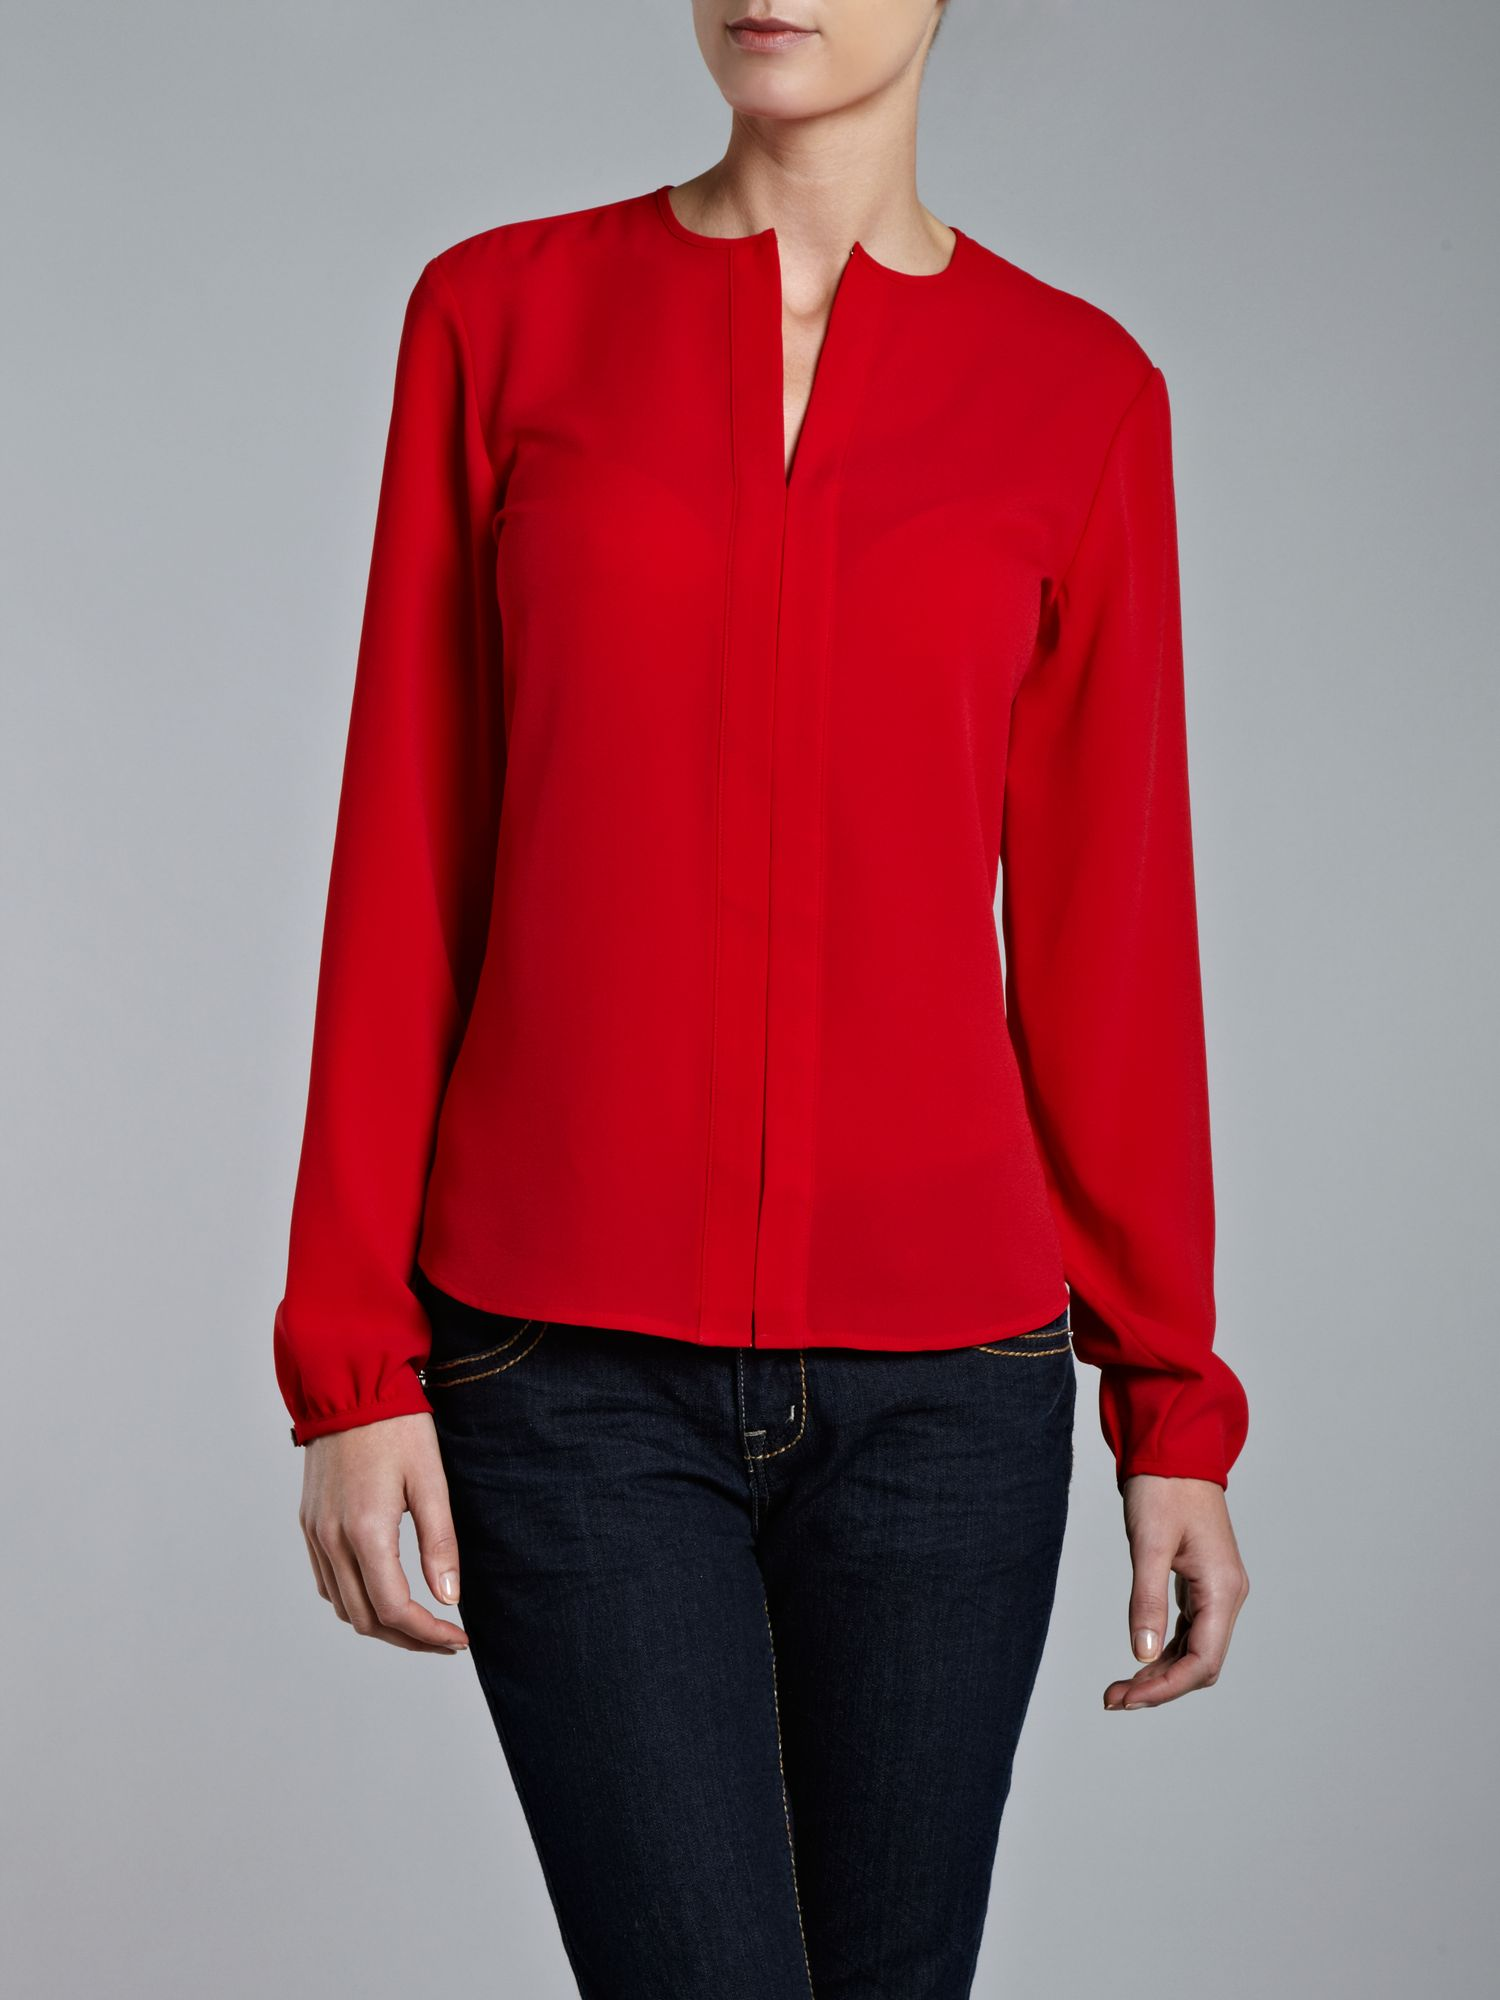 Red Chiffon Blouses. Women Round Neck Chiffon Comfort Tank Top Blouse Red. Product Image. Price $ Product Title. Women Round Neck Chiffon Comfort Tank Top Blouse Red. Add To Cart. There is a problem adding to cart. Please try again. Product - Sexy V Neck Loose Long Sleeve Chiffon Shirt Pocket Top Plus Size Women Blouse. Product.